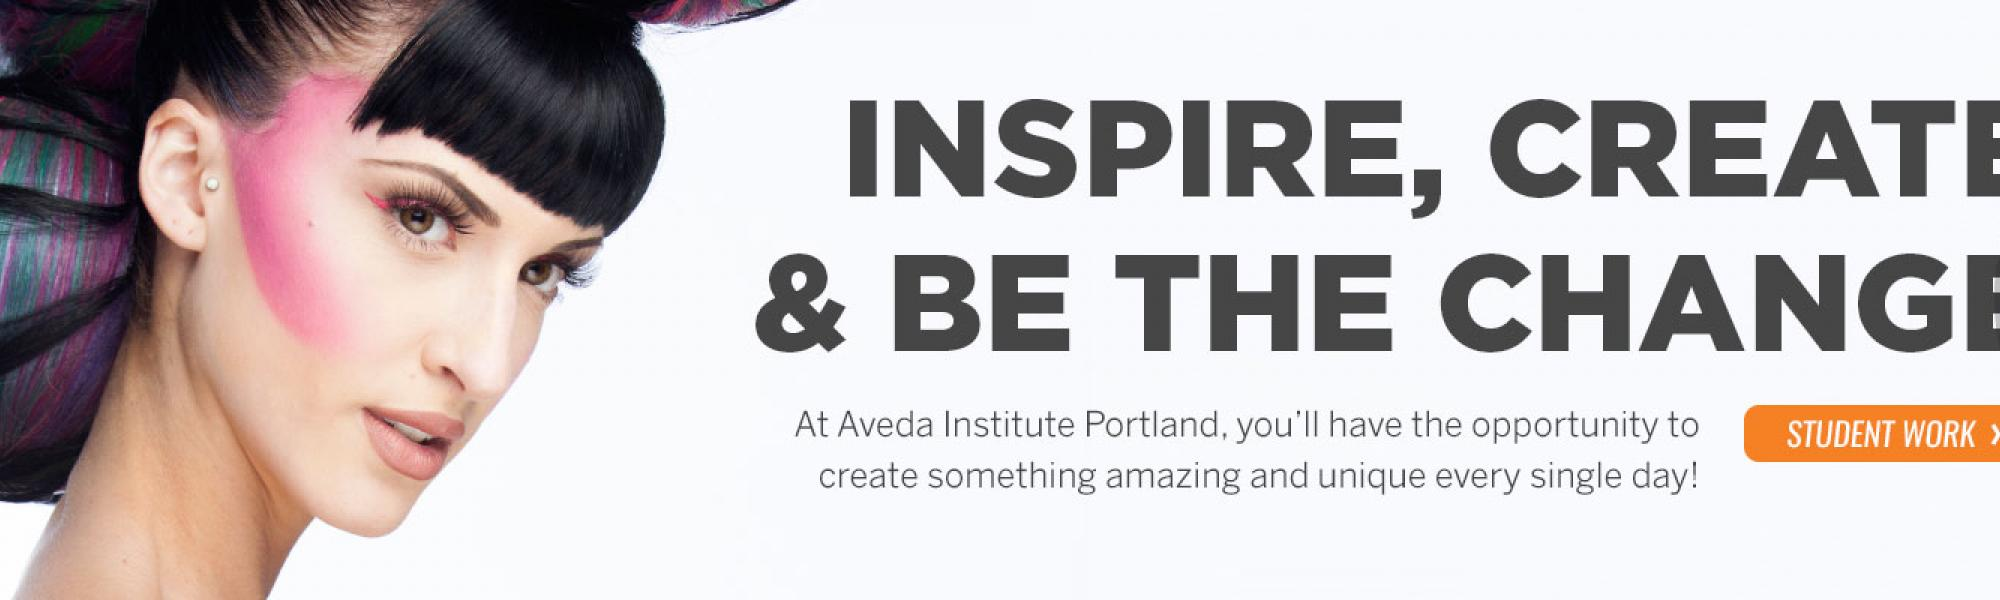 Inspire, Create, Change - Aveda Institute Portland